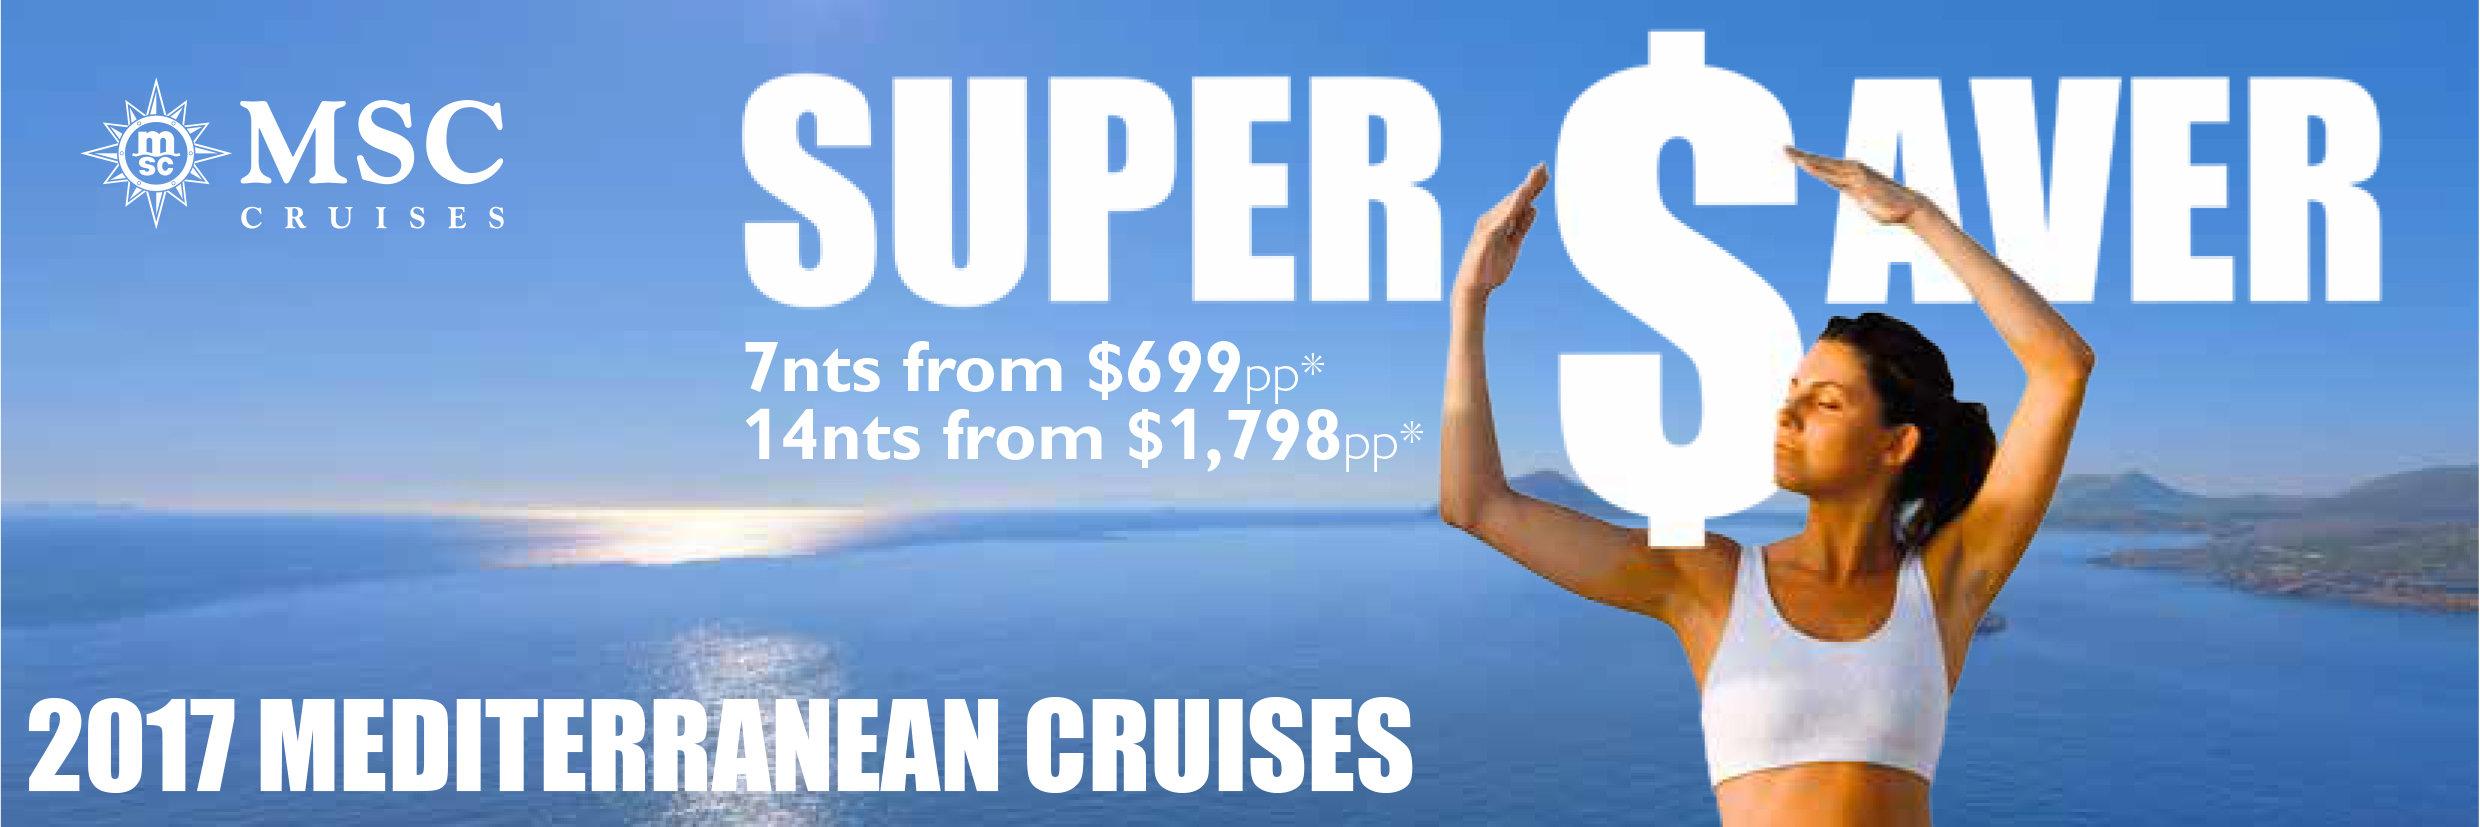 Europe MSC cruise deals